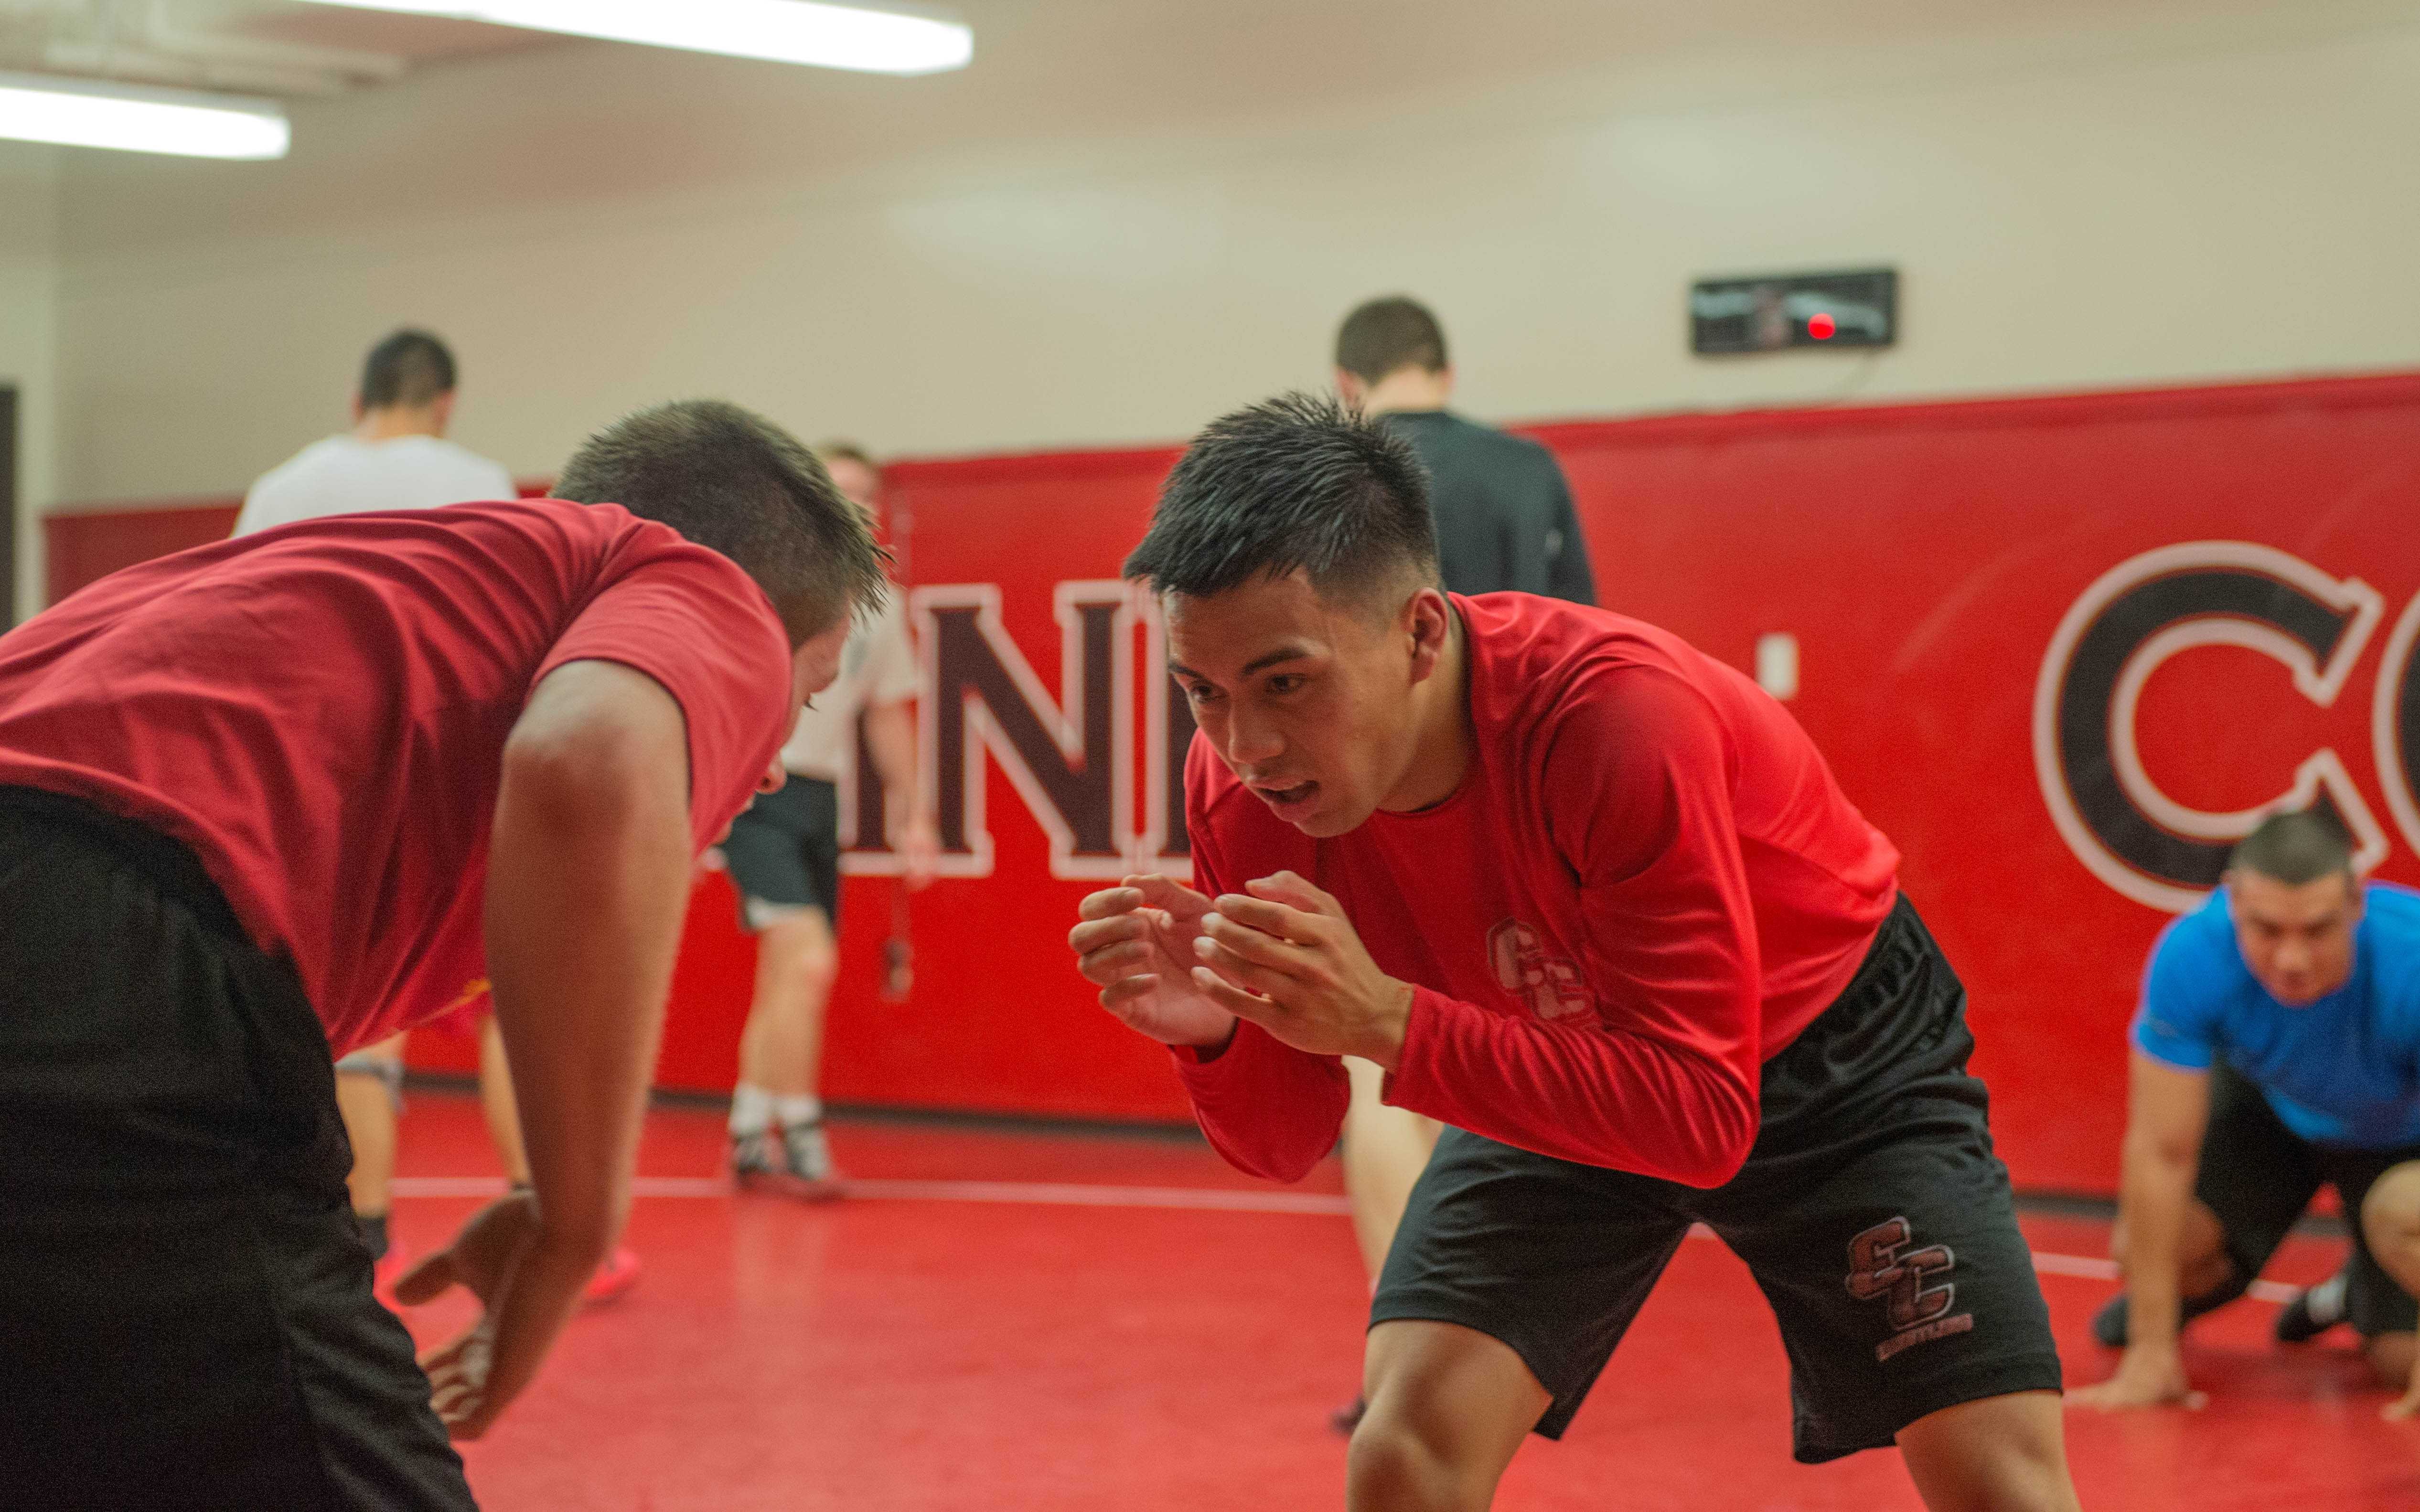 Aaron Aquino and Tanner Robson drill takedowns during practice on Nov. 29, 2016.